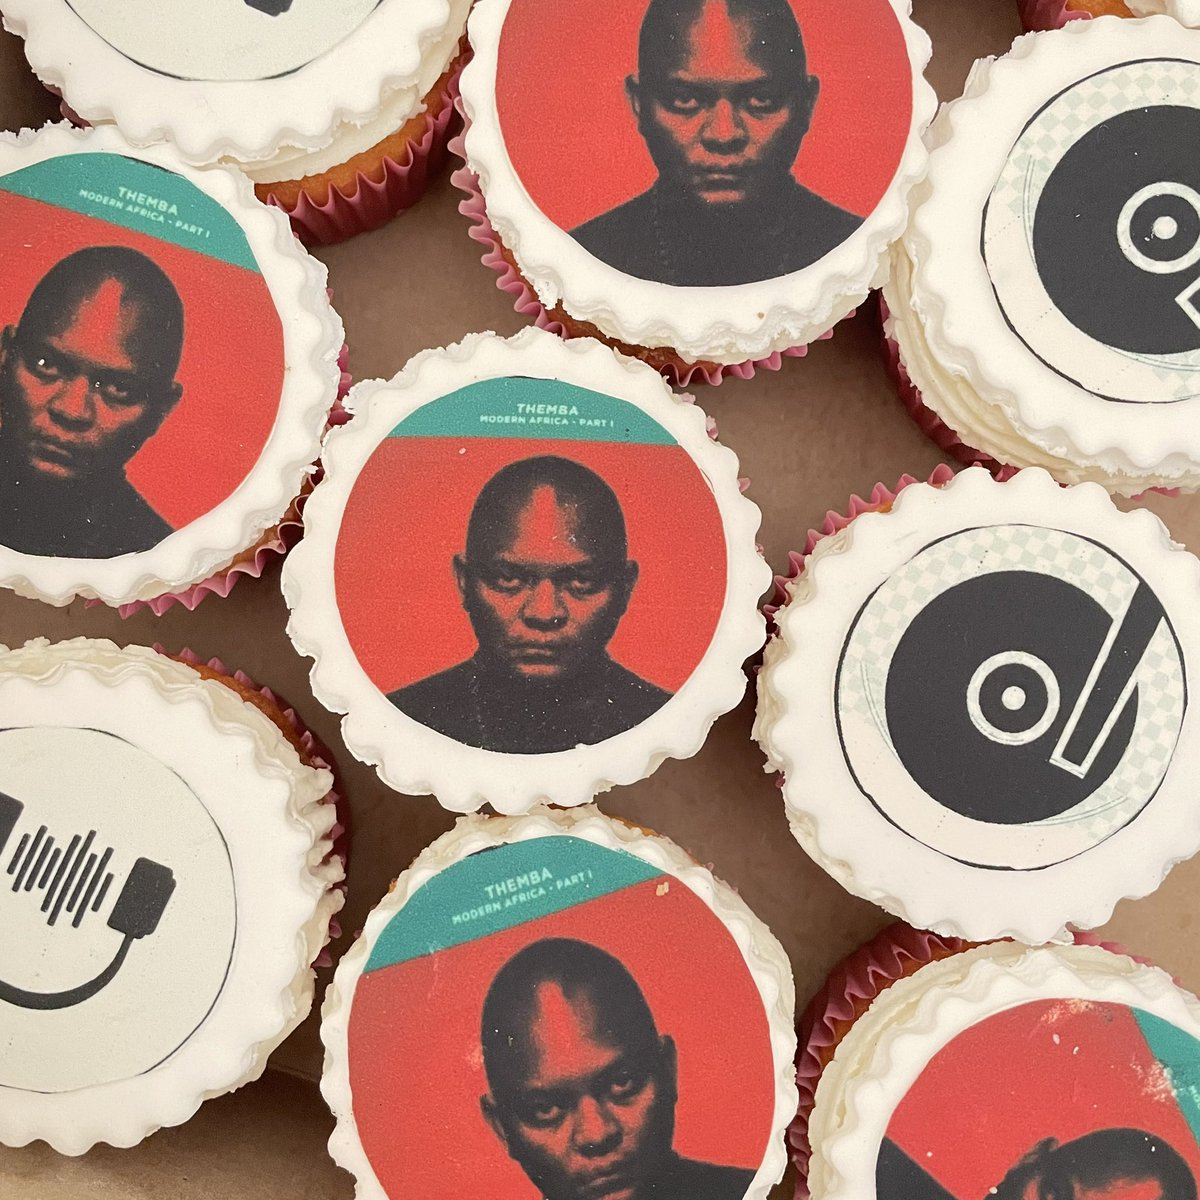 """What's better than some cupcakes? The Album cover from my debut album on some cup cakes. """"Modern Africa"""" out now on all platforms… what's your favorite song? #ModernAfrica #ListenToThemba"""